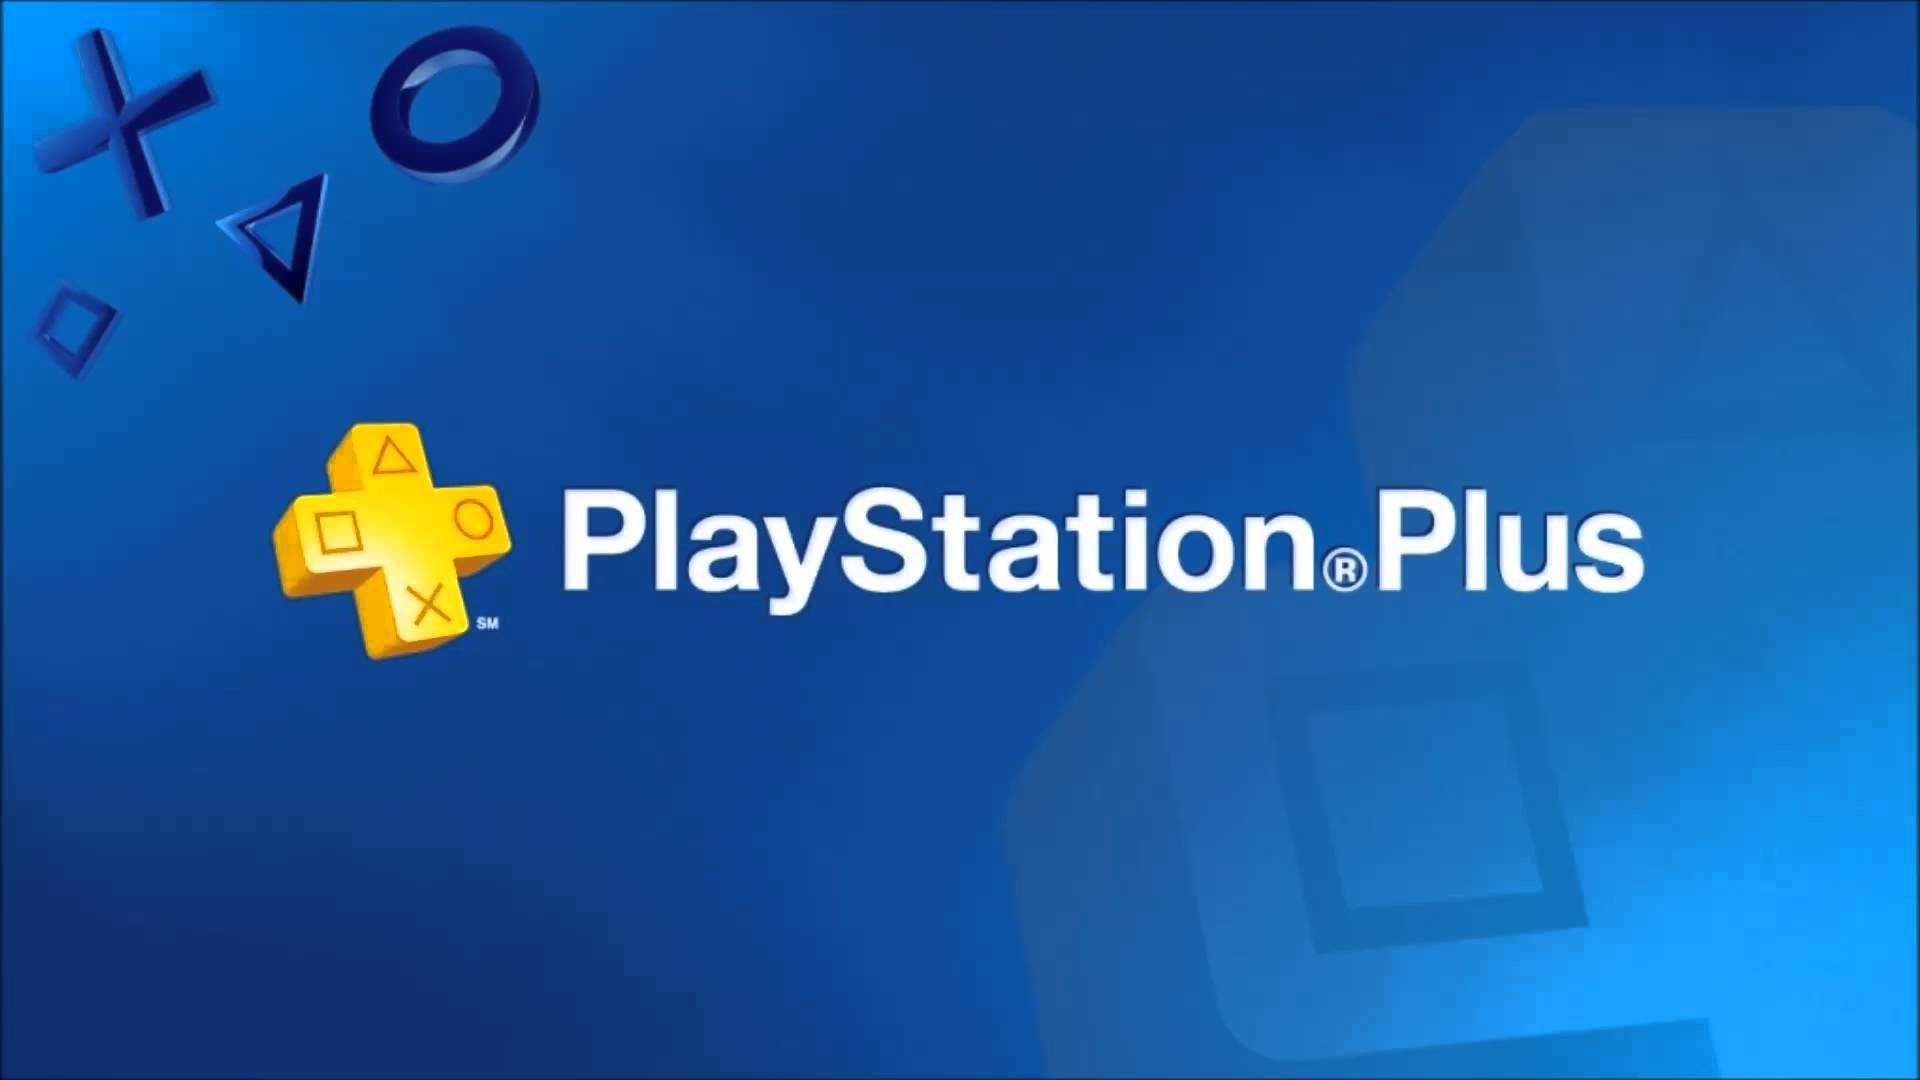 Psn December Free Games 2020.Free Playstation Plus January 2020 Our Predictions